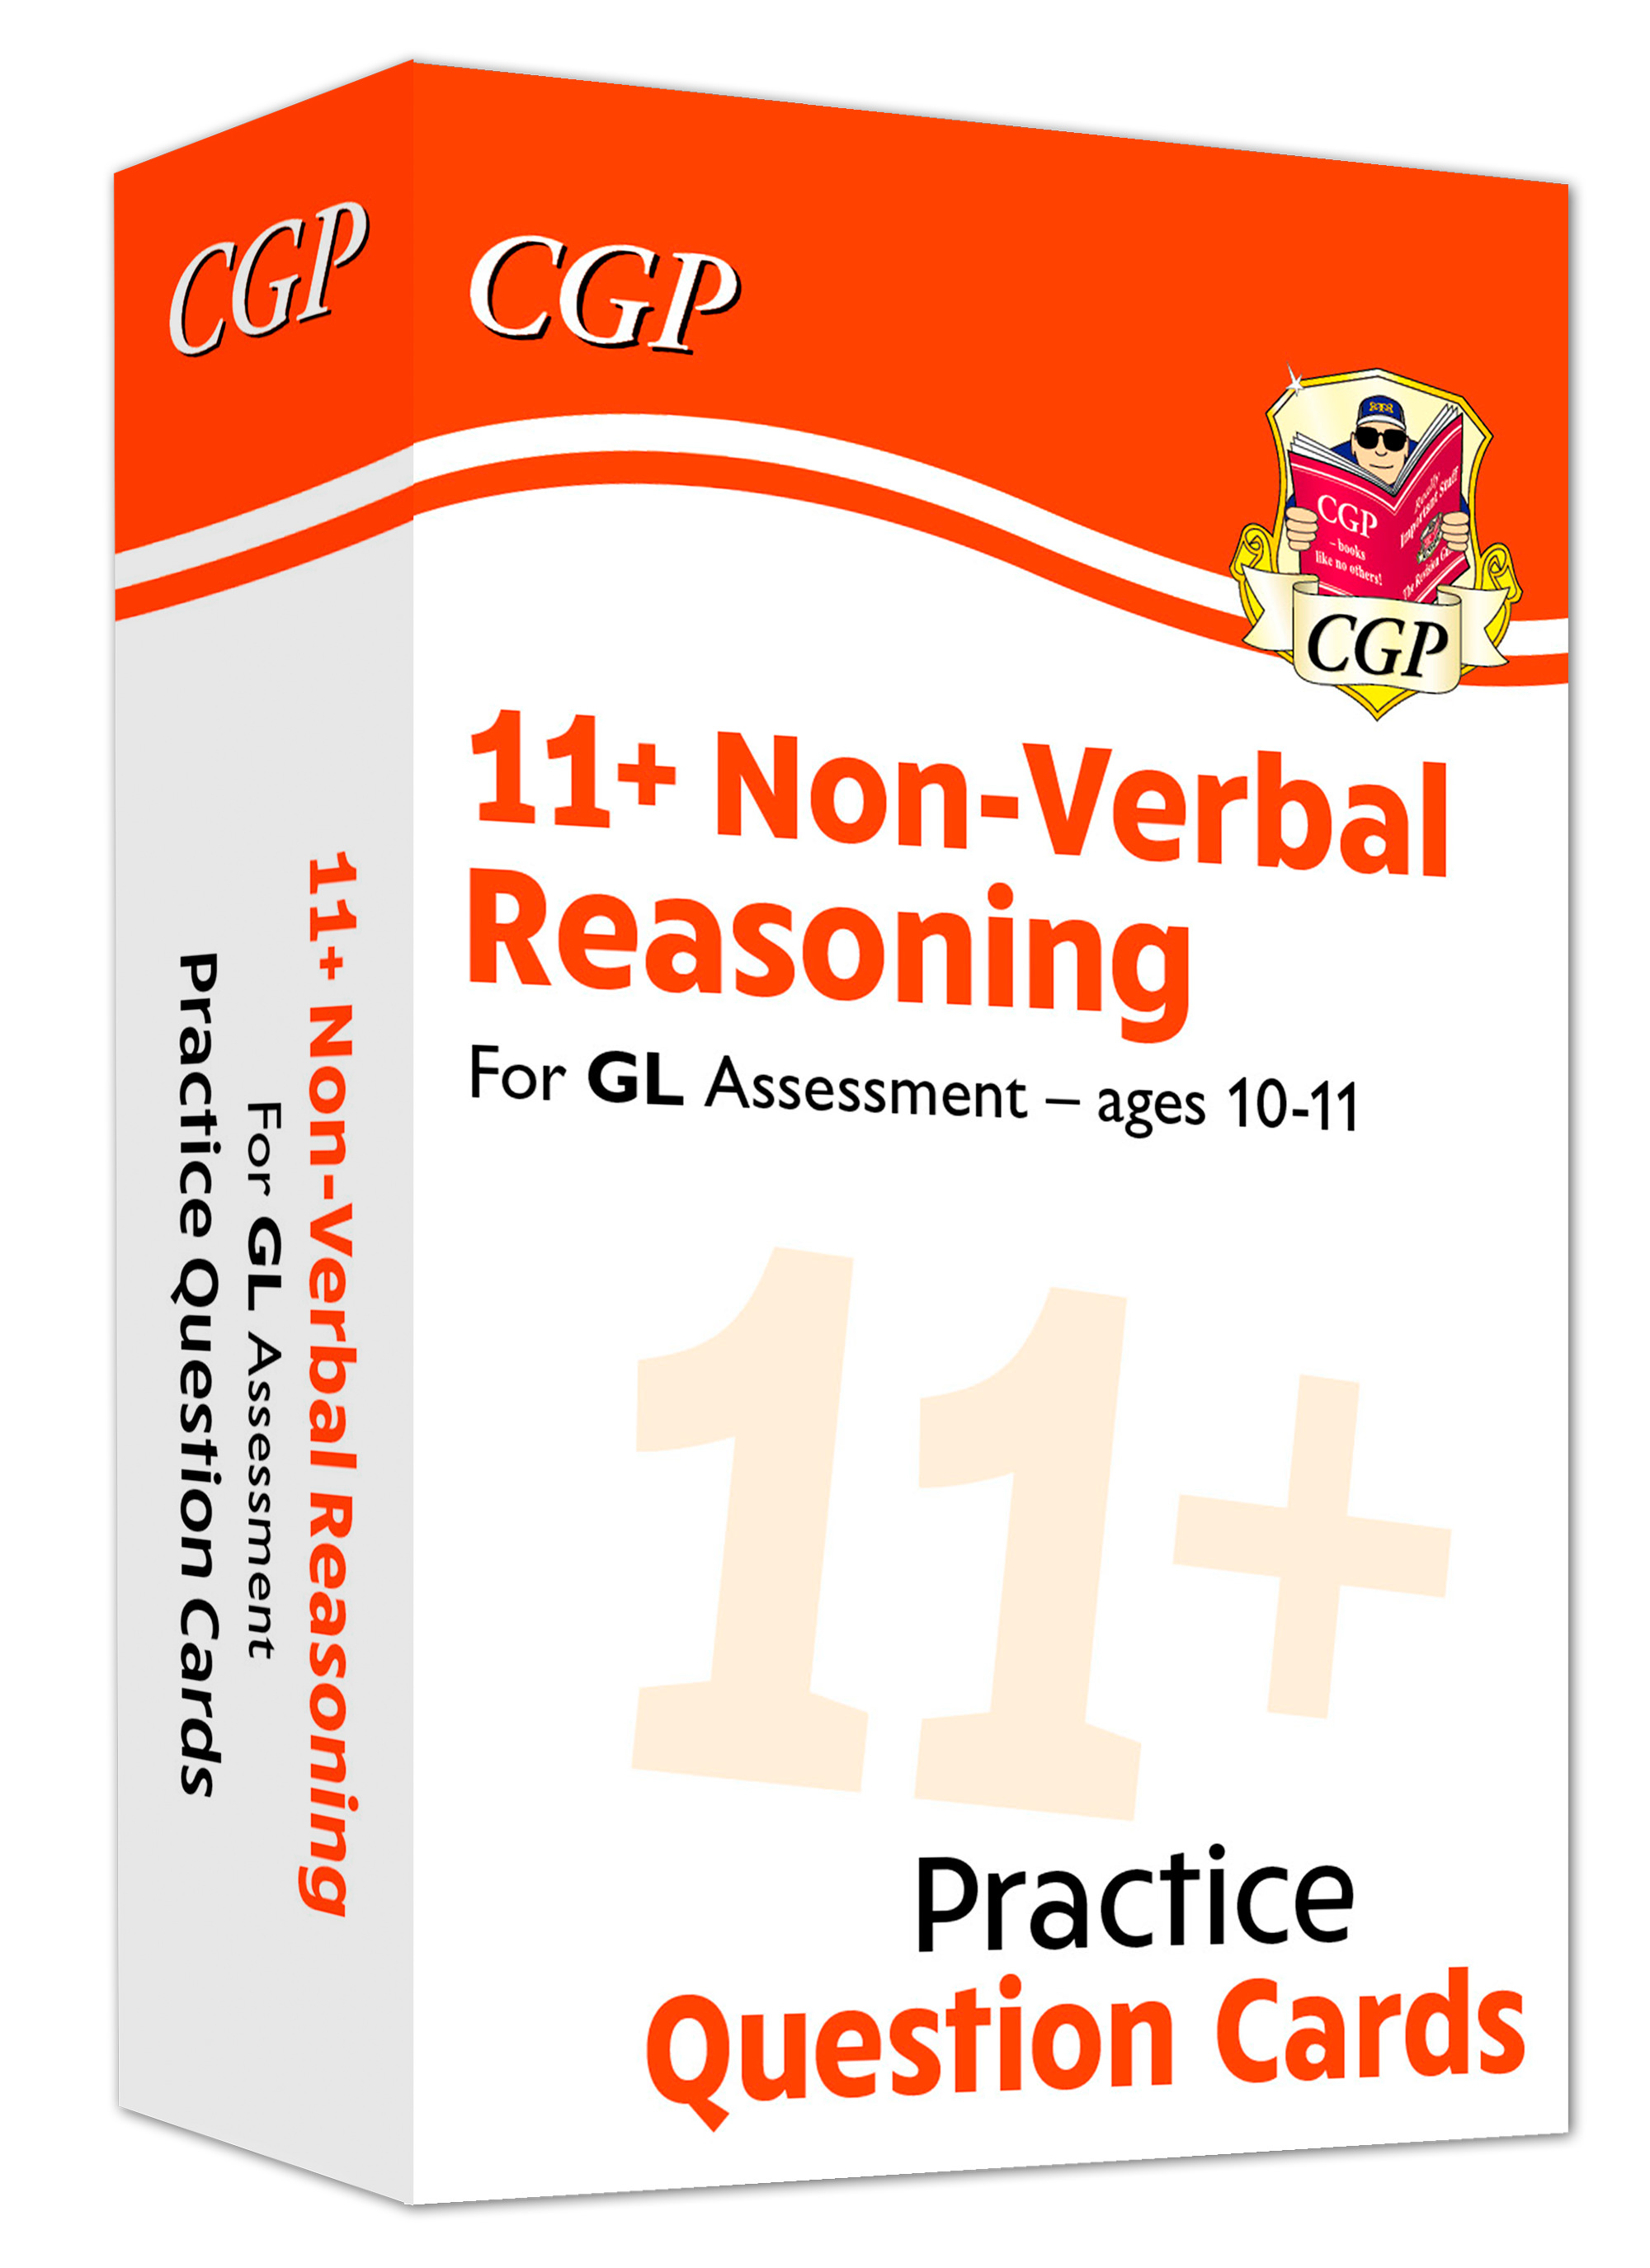 N6FE1 - New 11+ GL Non-Verbal Reasoning Practice Question Cards - Ages 10-11